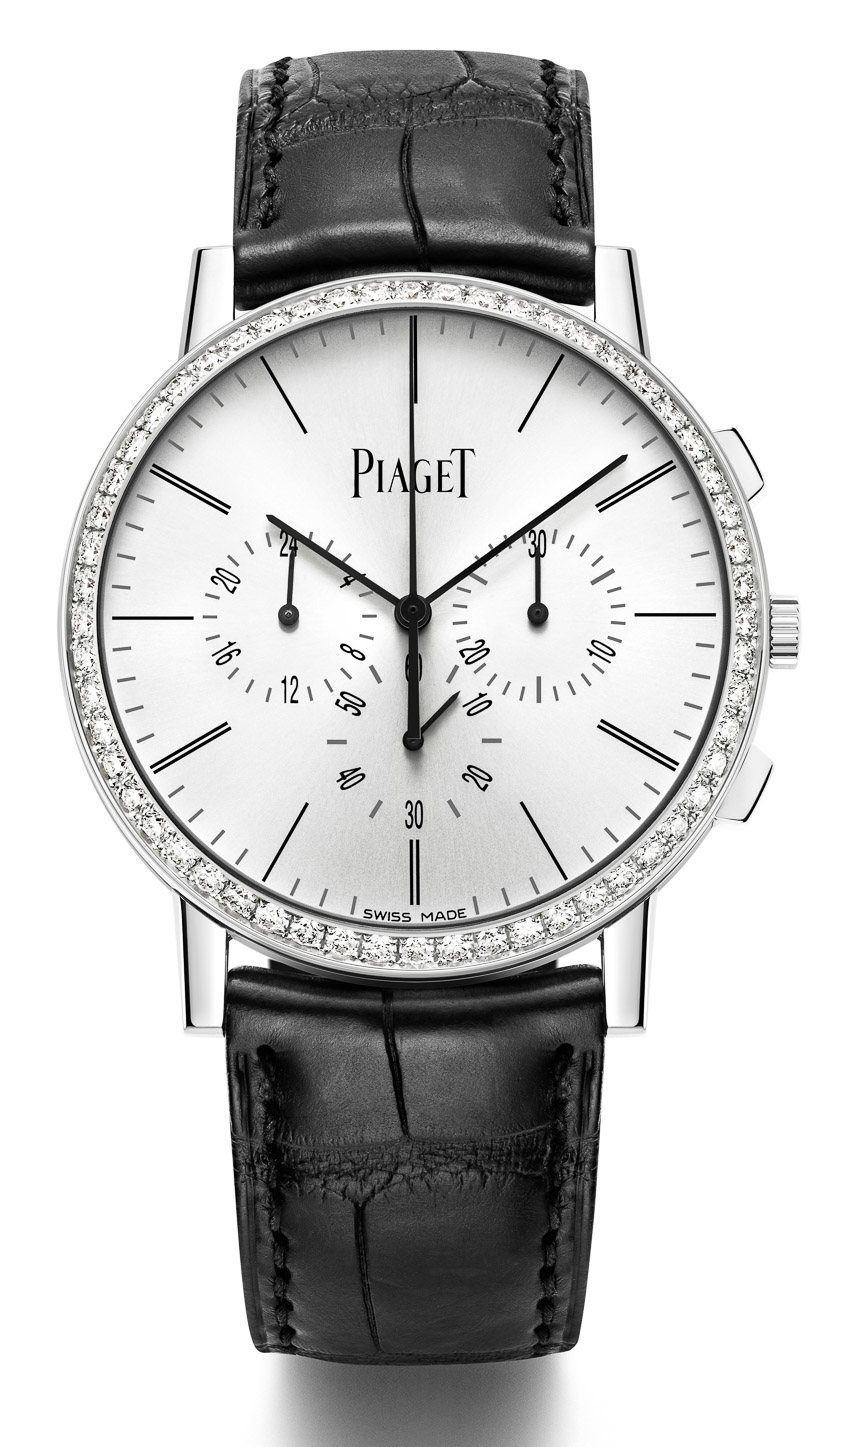 Piaget-Altiplano-chronograph-watch-7